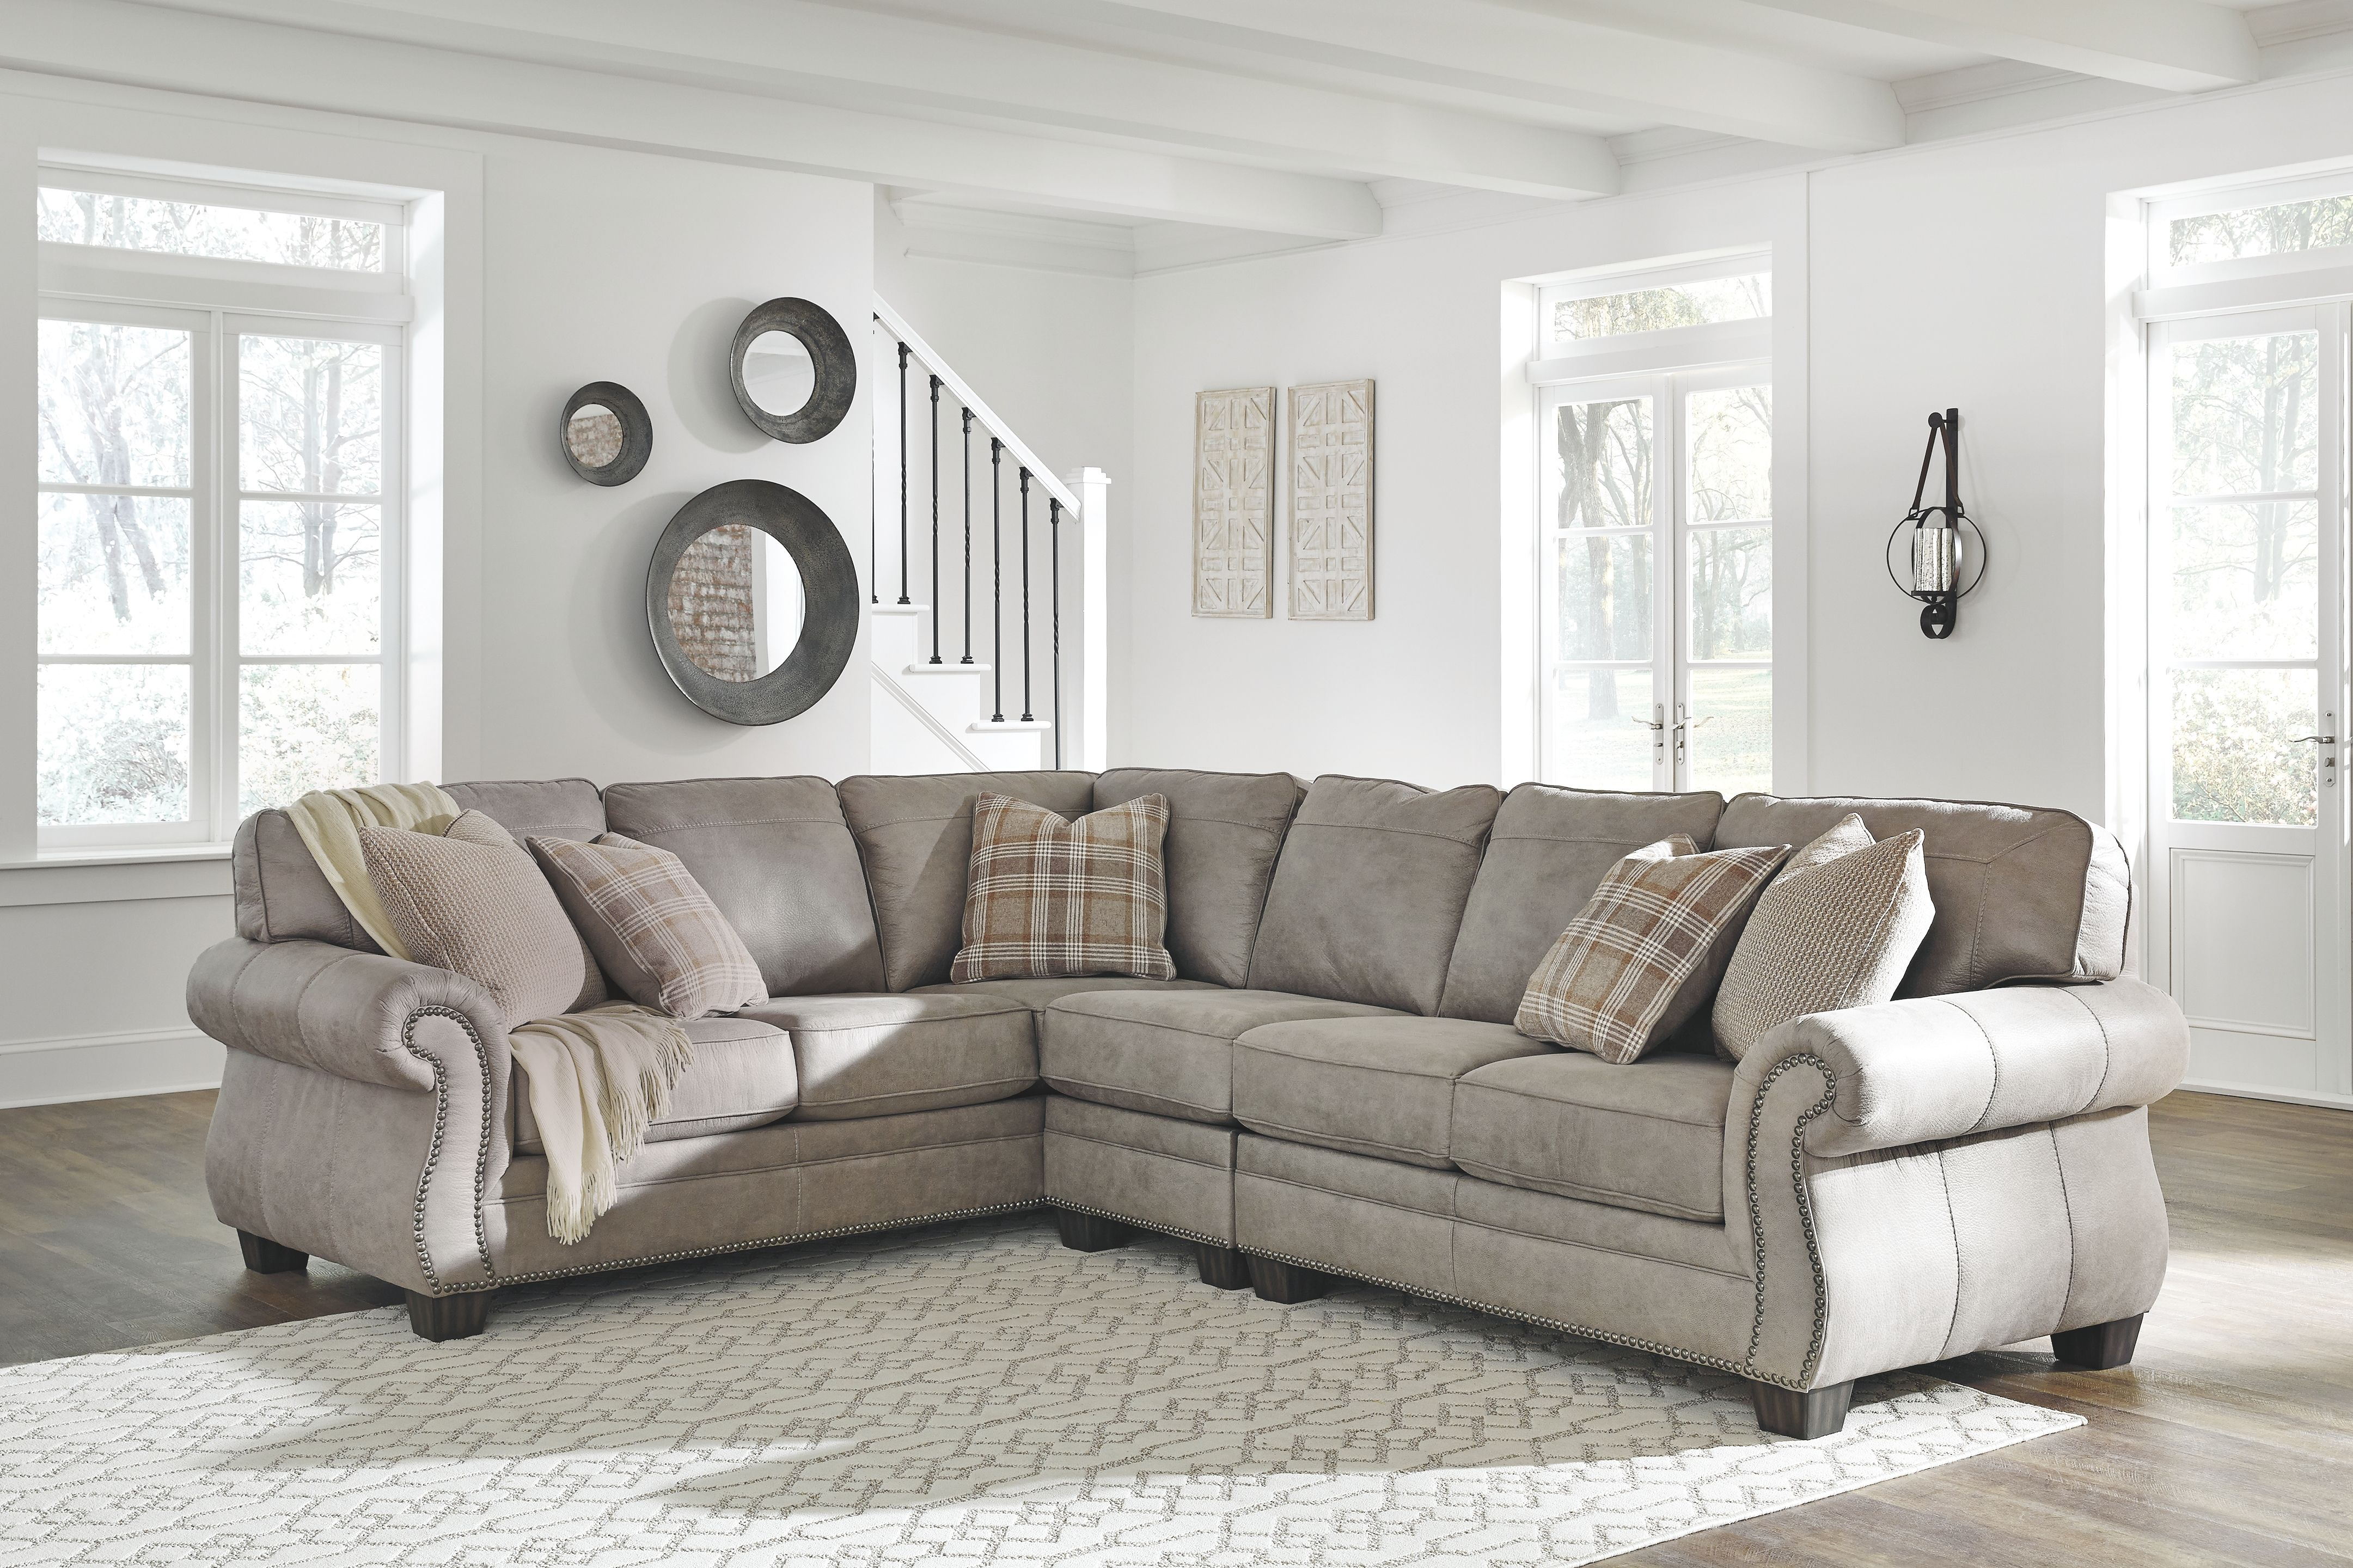 Olsberg 3 Piece Sectional In 2020 3 Piece Sectional Olsberg Sectional Sofas Living Room #olsberg #steel #living #room #set